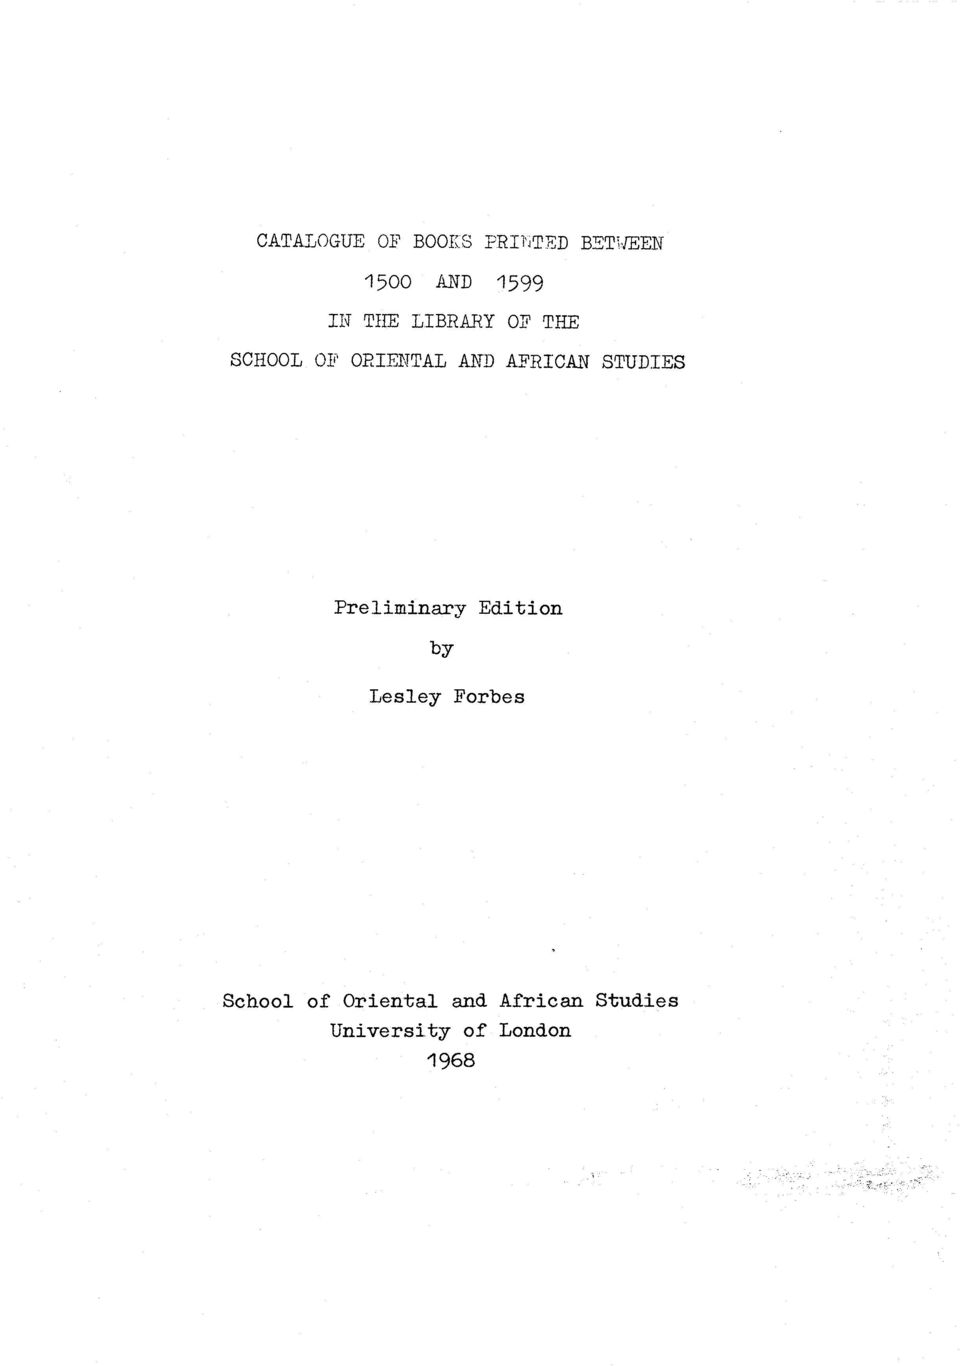 STUDIES Preliminary Edition by Lesley Forbes School